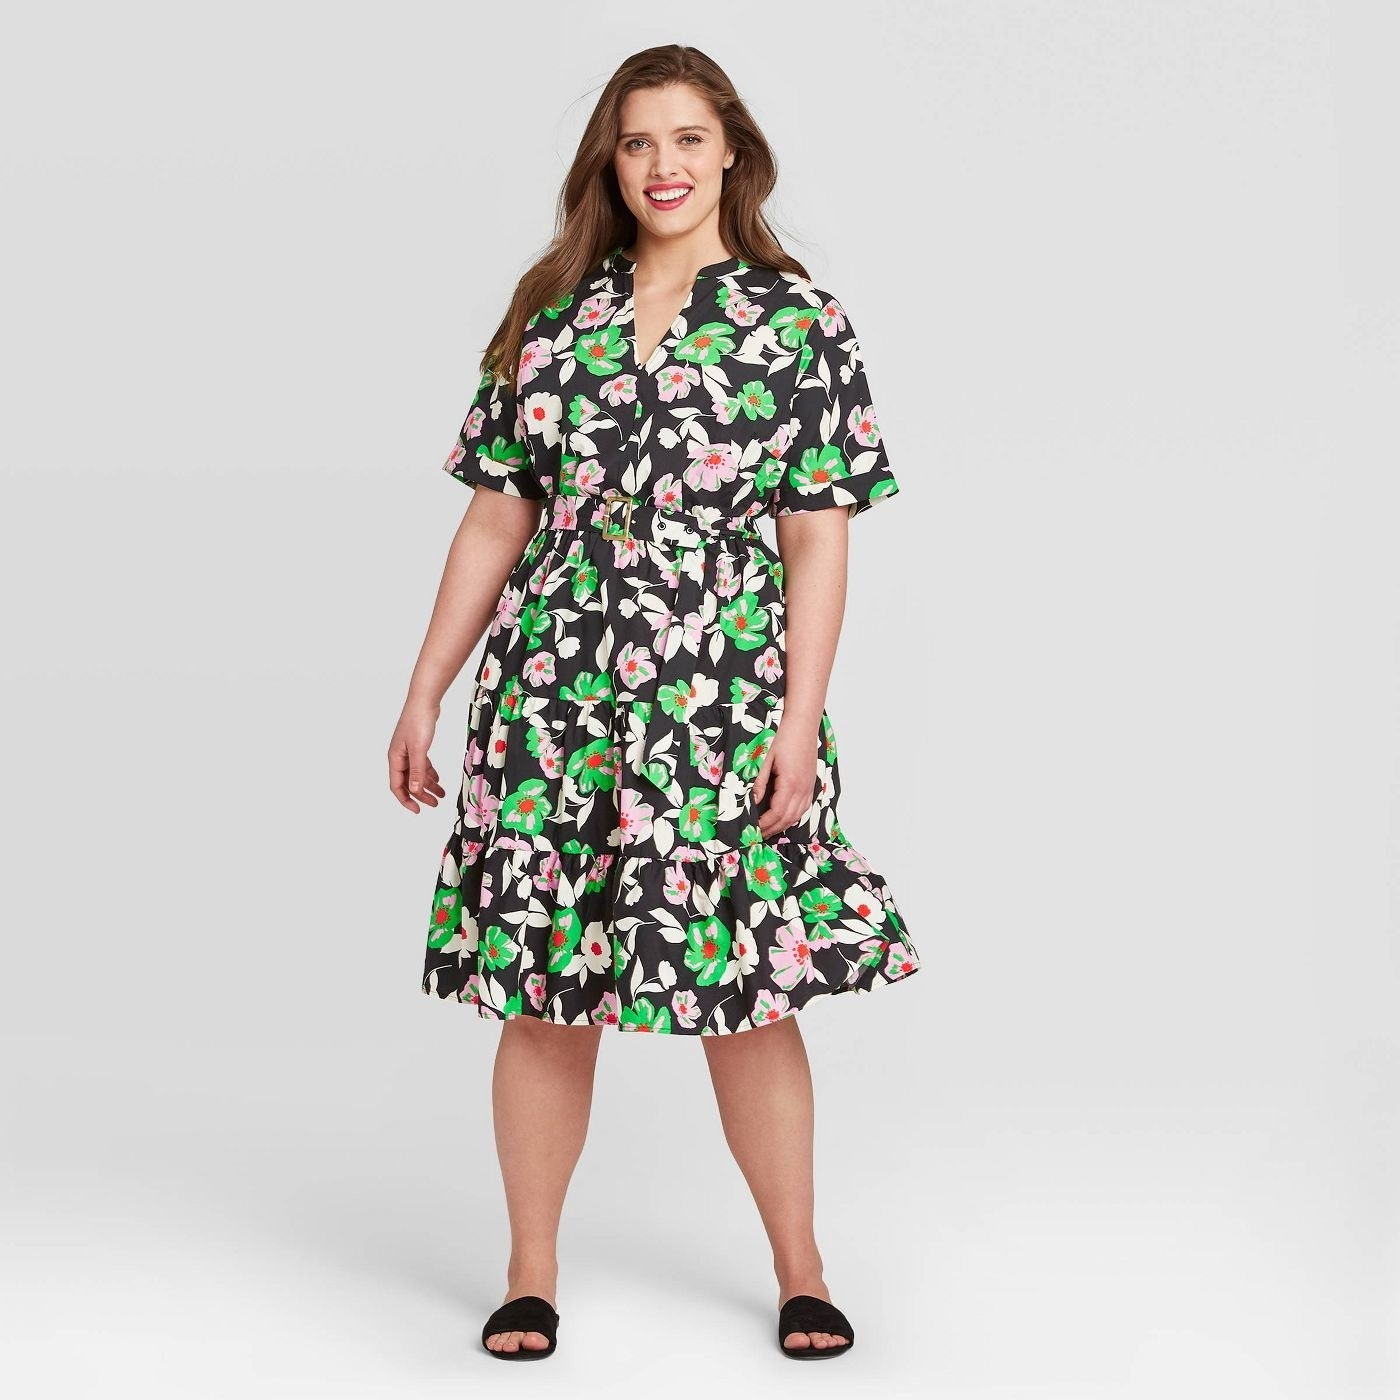 A black short-sleeved dress with pink and green florals